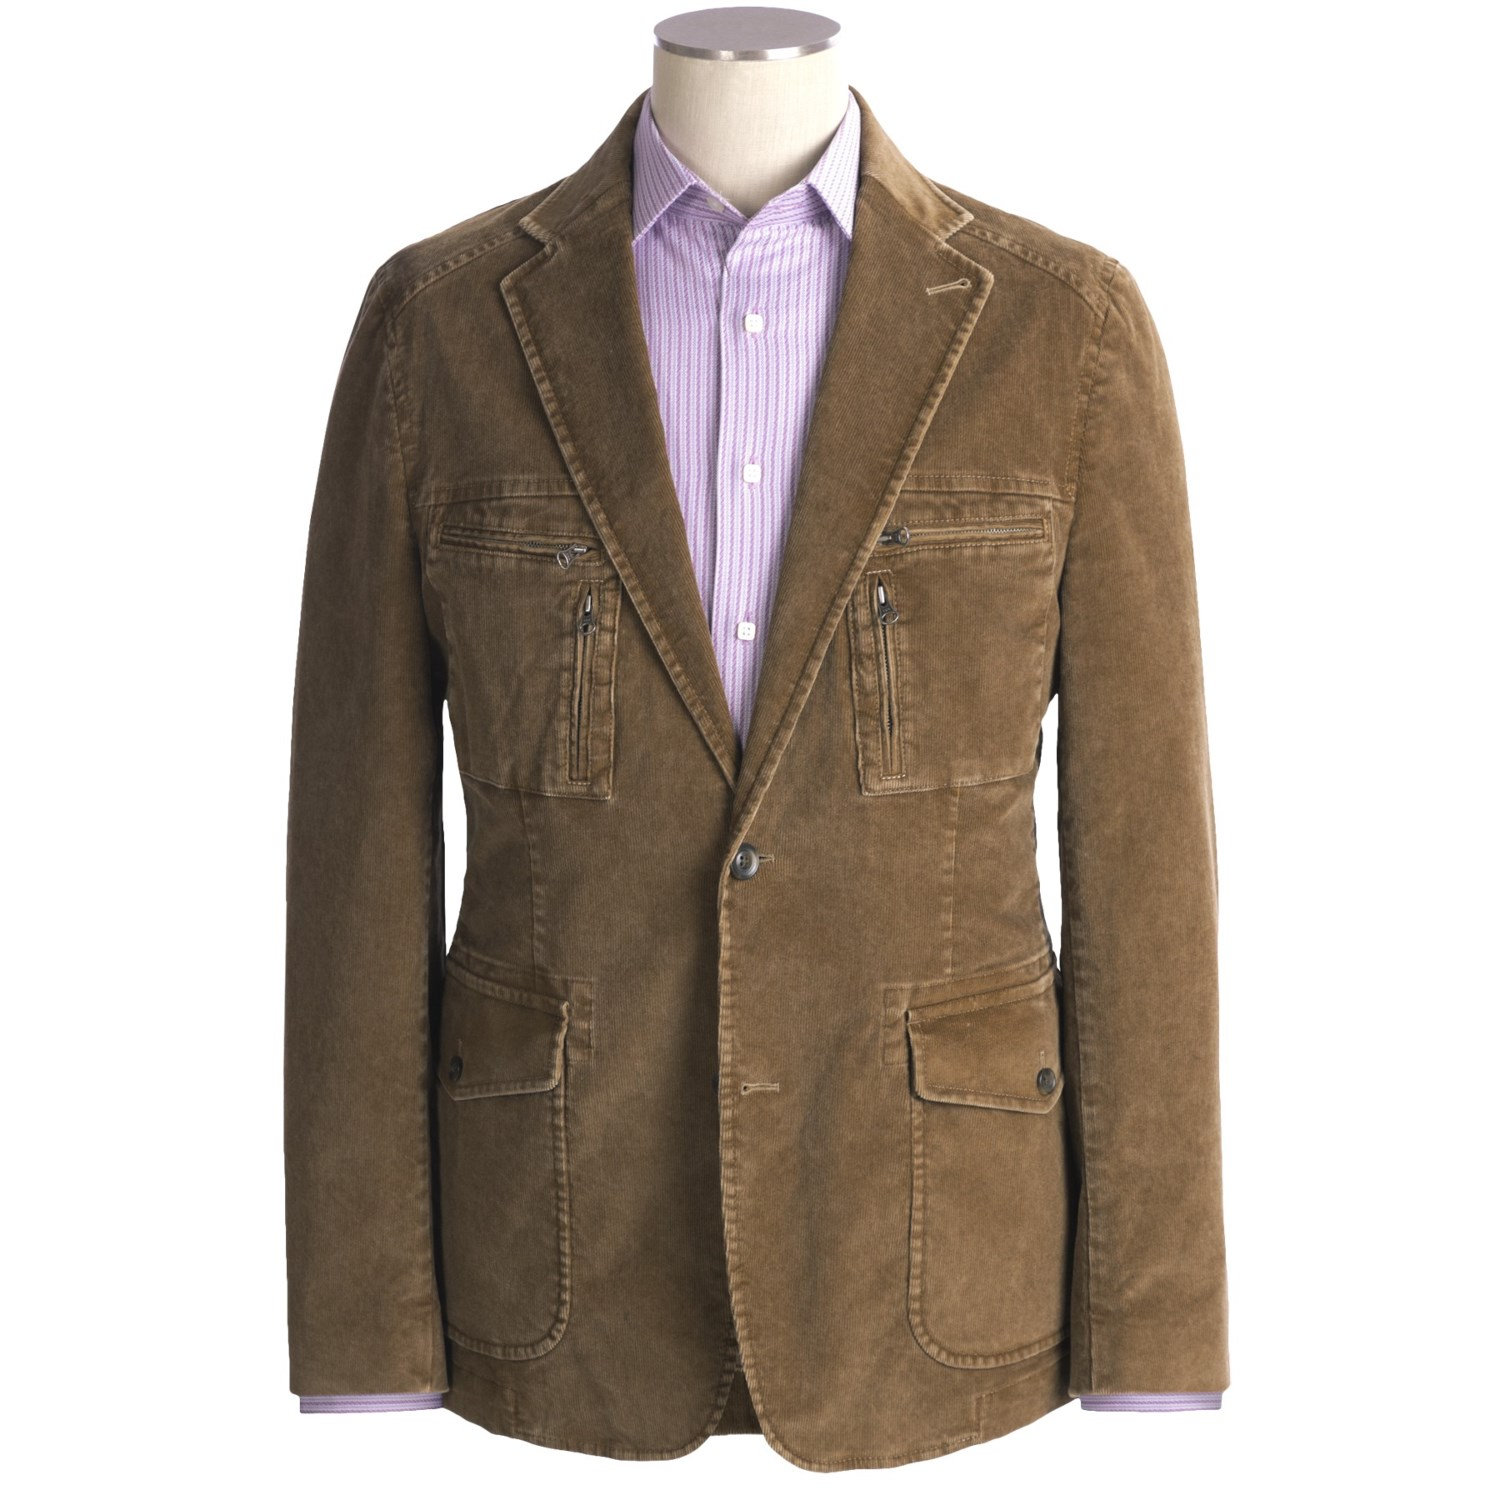 Find great deals on eBay for mens sport coats. Shop with confidence.